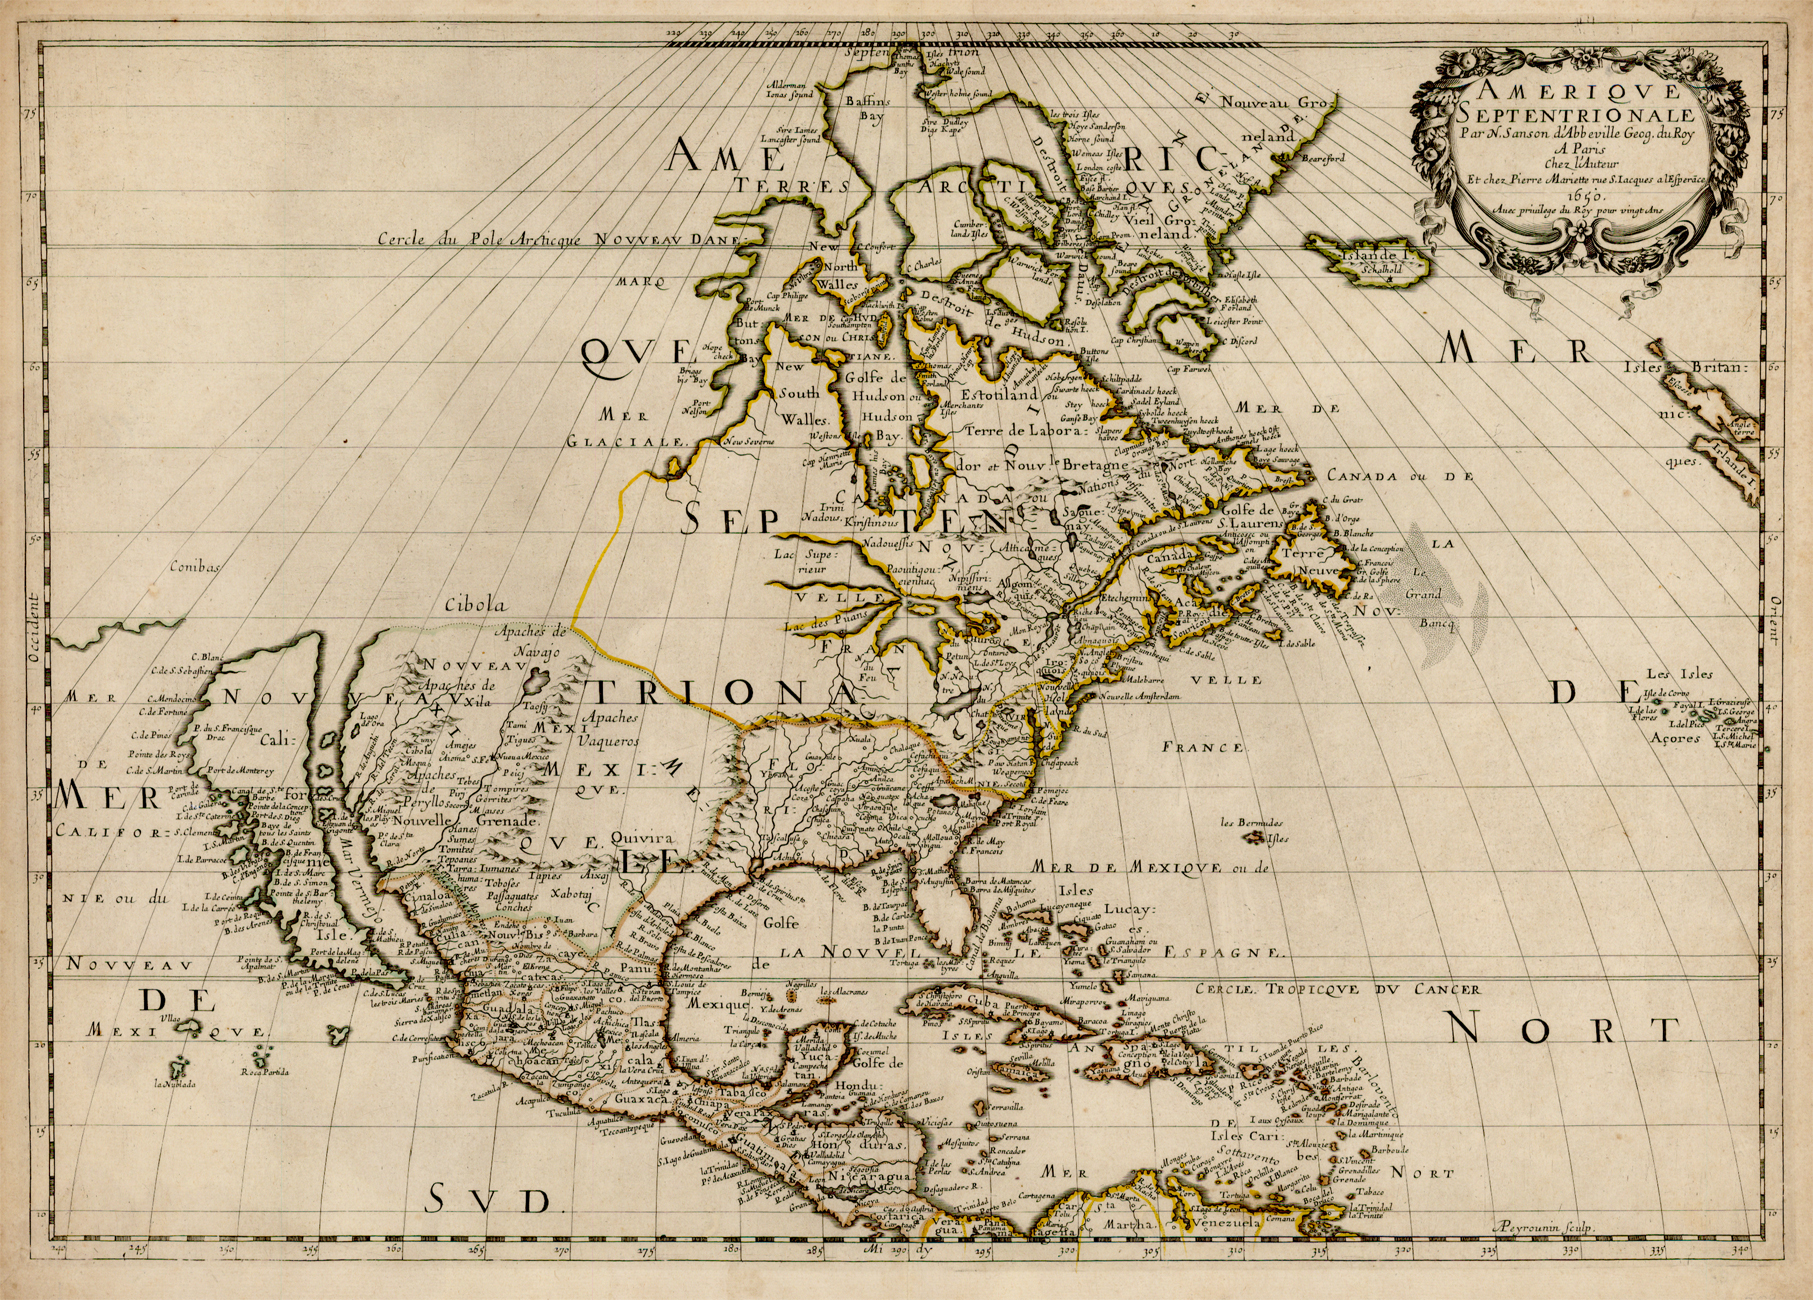 A 1650 map of Sanson's showing [[North America